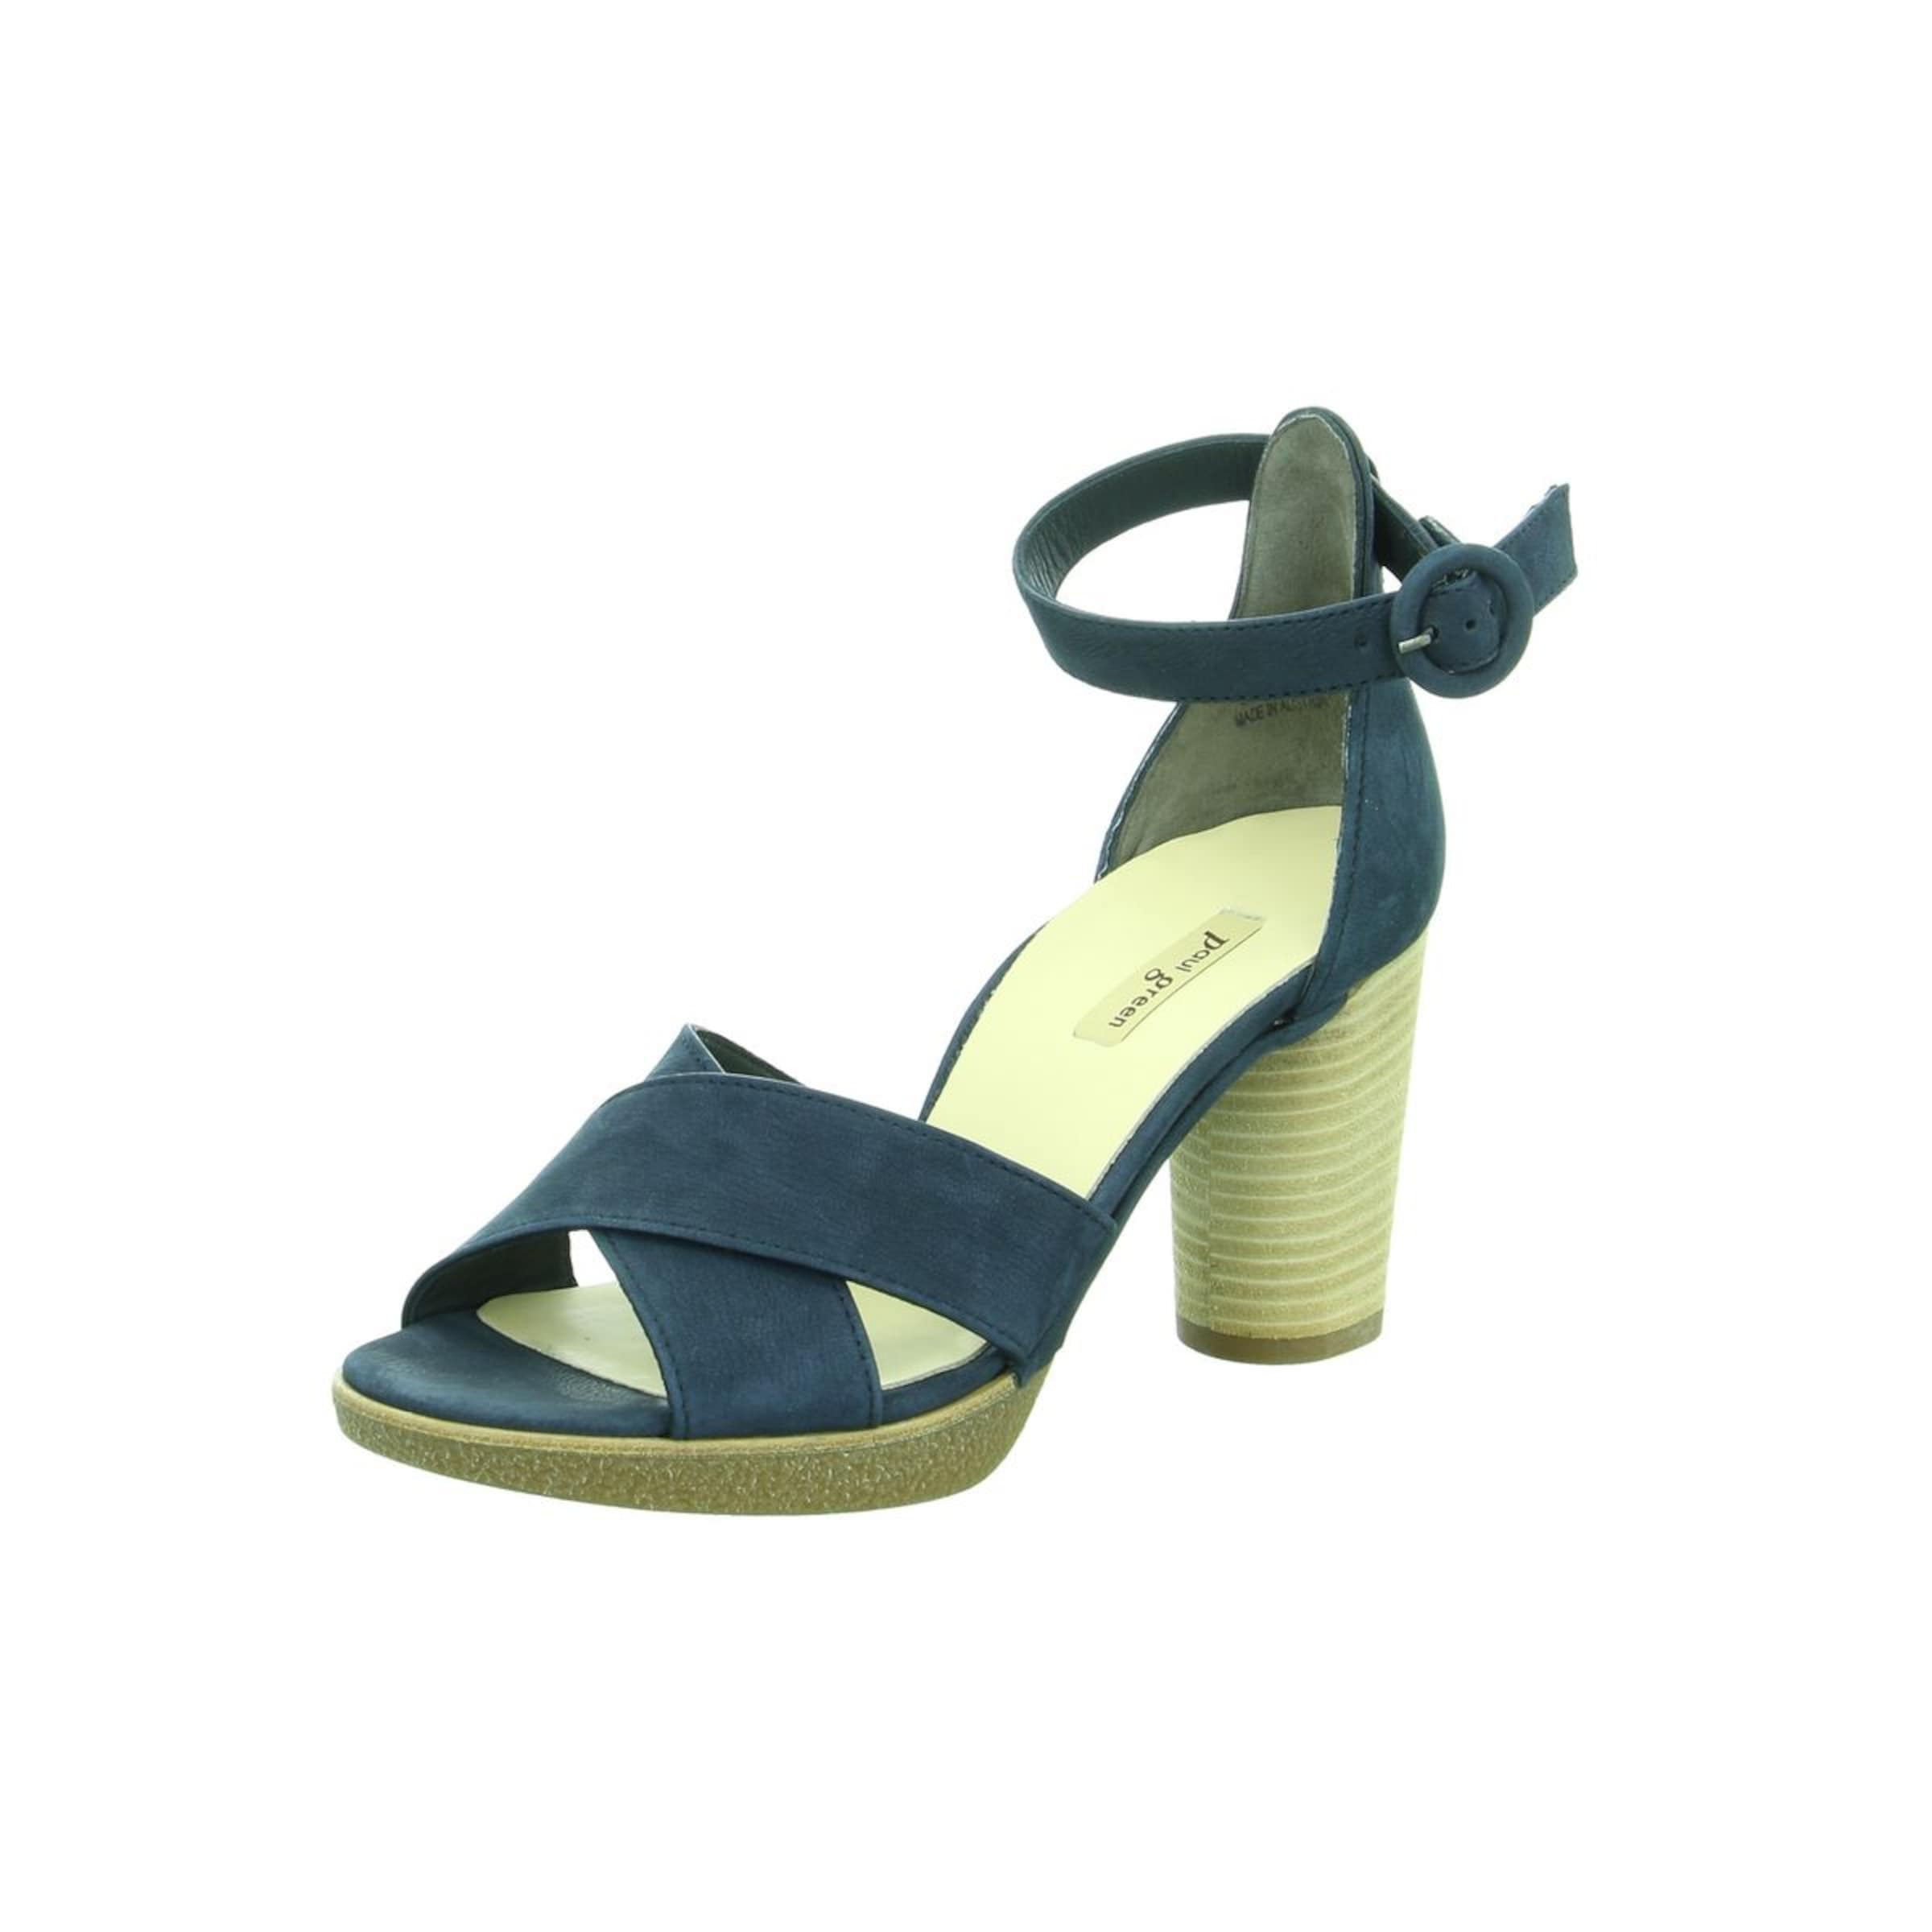 In Paul Sandalette Pastellblau Green Pastellblau In Green Sandalette Paul Paul v6ybf7Yg